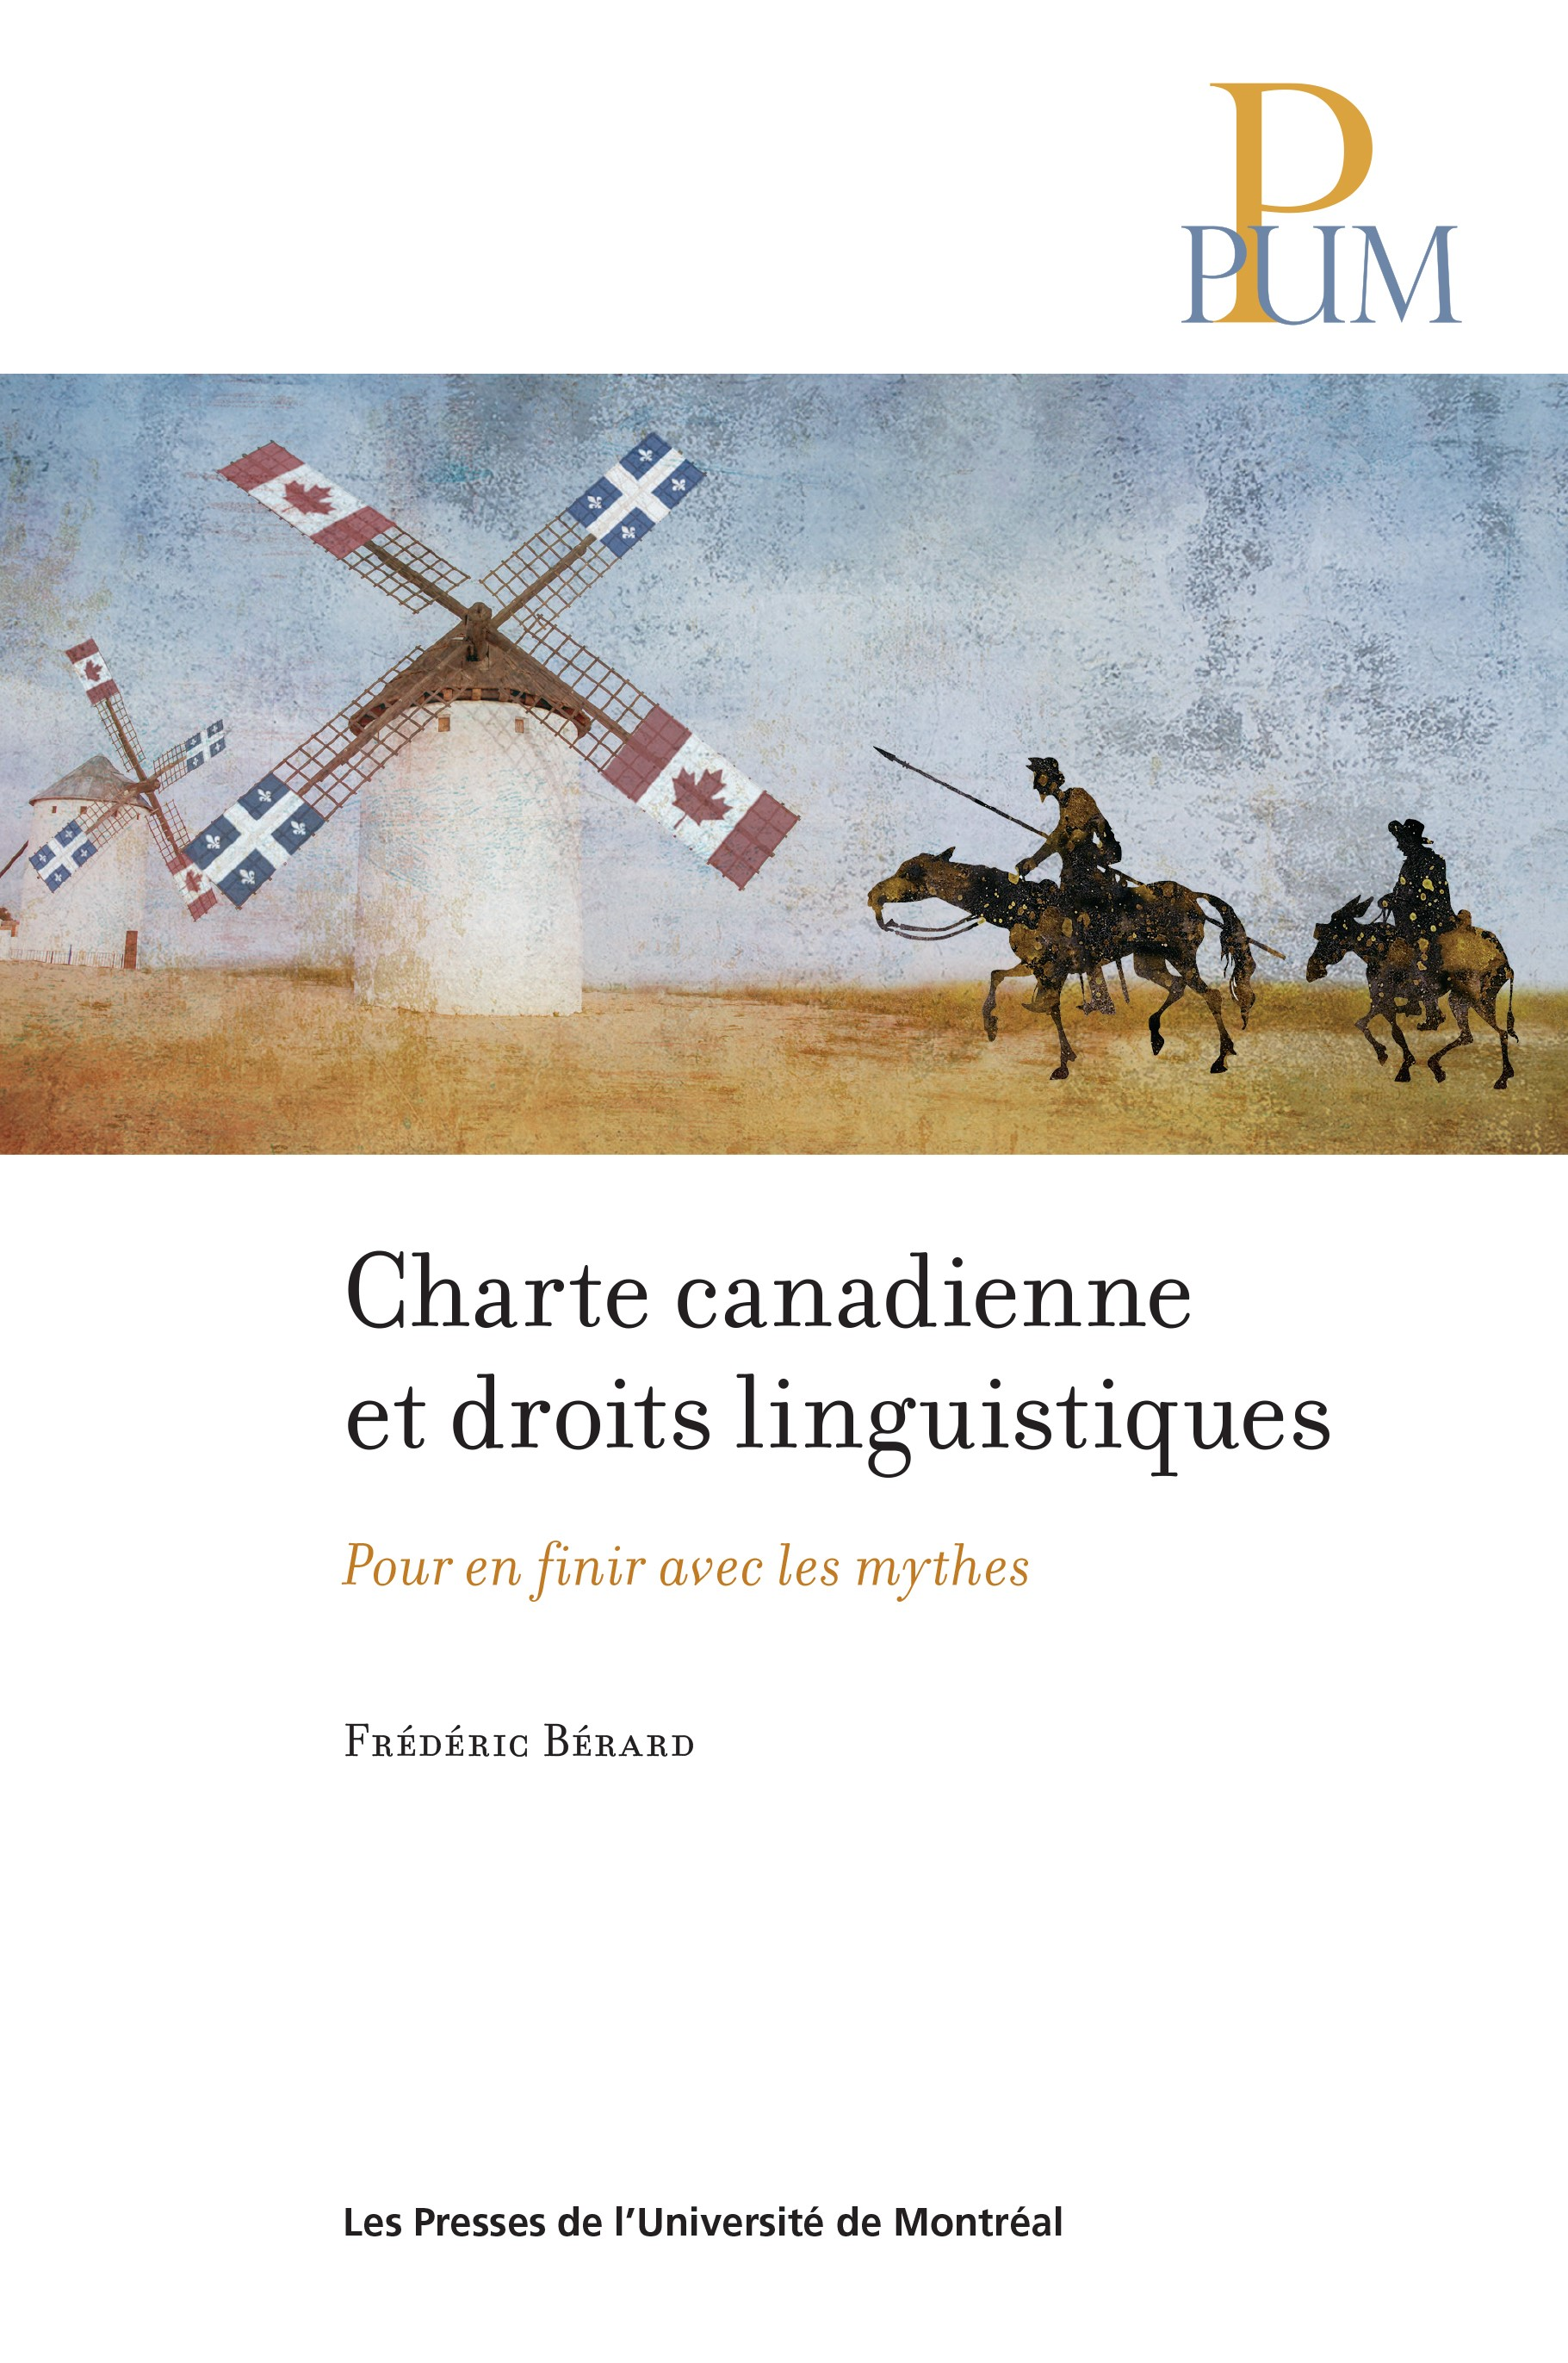 Charte Canadienne book cover